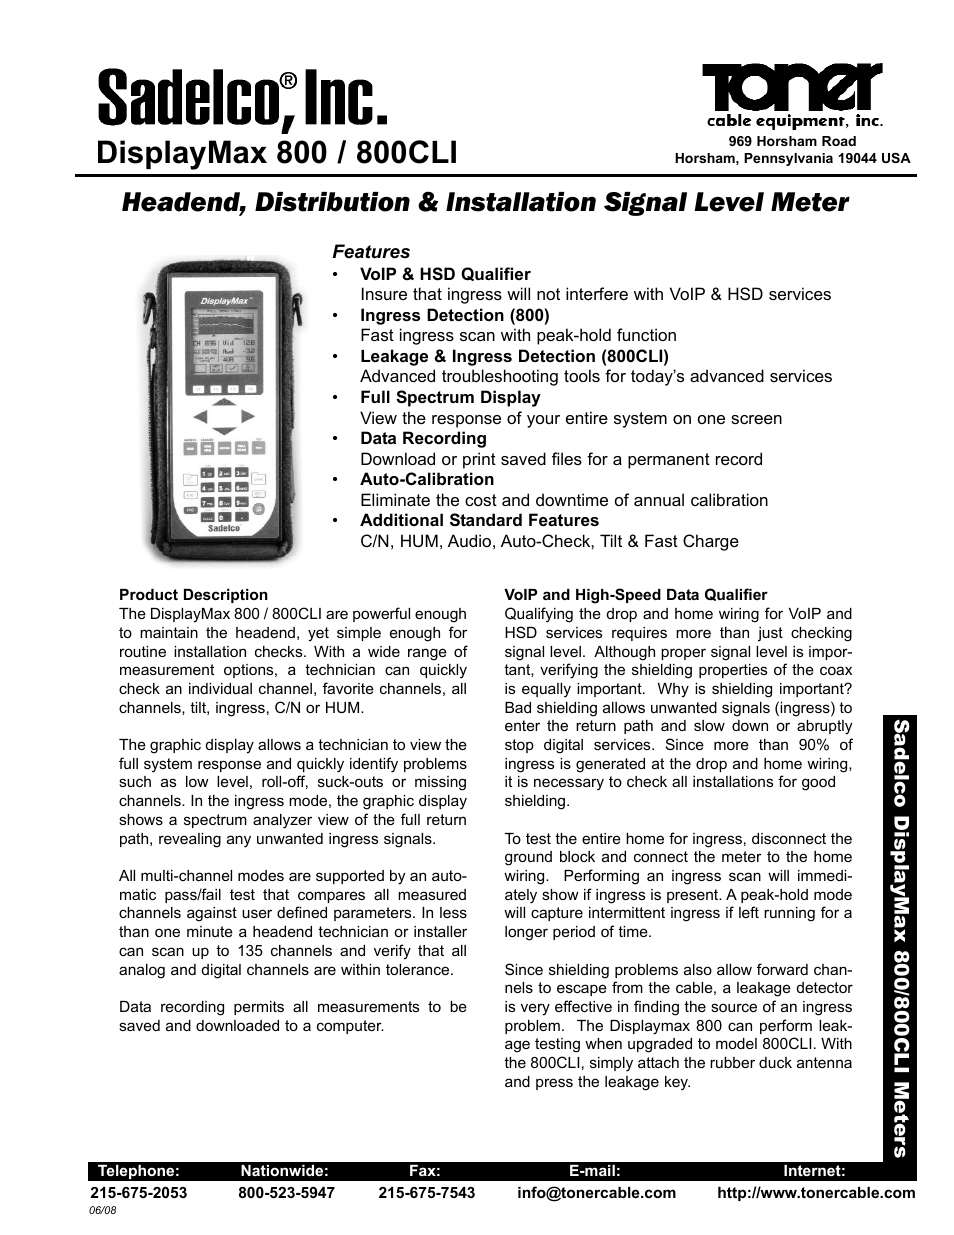 Toner Cable DisplayMax 800 Headend, Distribution & Installation Signal  Level Meter User Manual | 2 pages